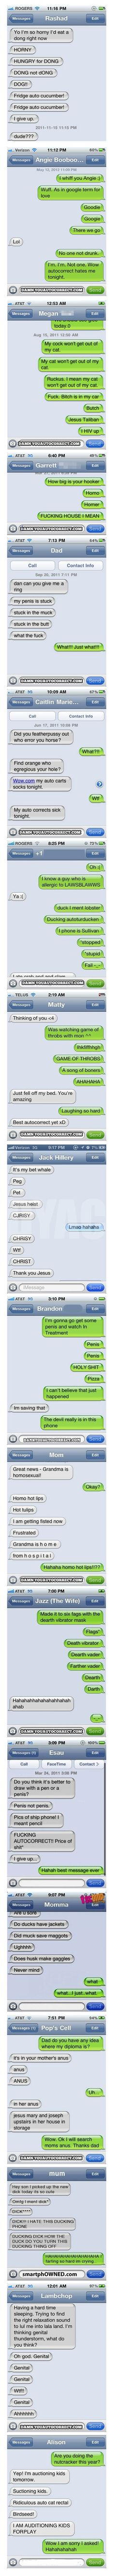 18  reasons not to own a smartphone. Best Autocorrect Struggles  I laughed myself to tears